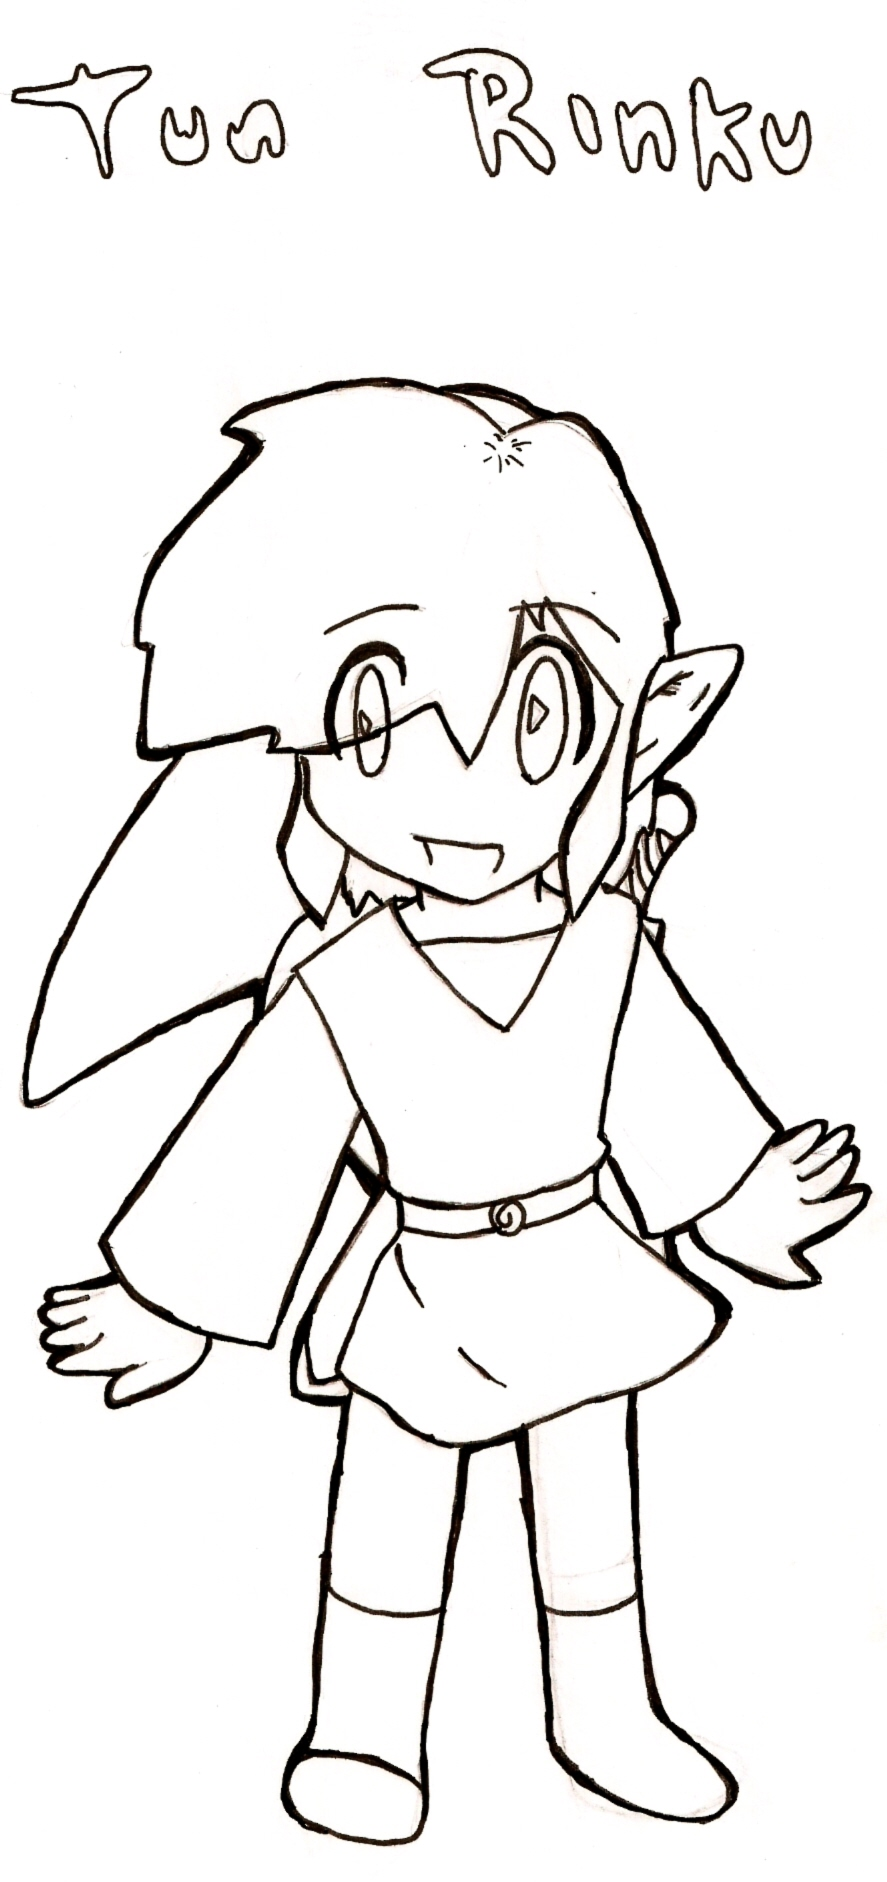 Toon Link Coloring Sheet By Chibifighter On Deviantart